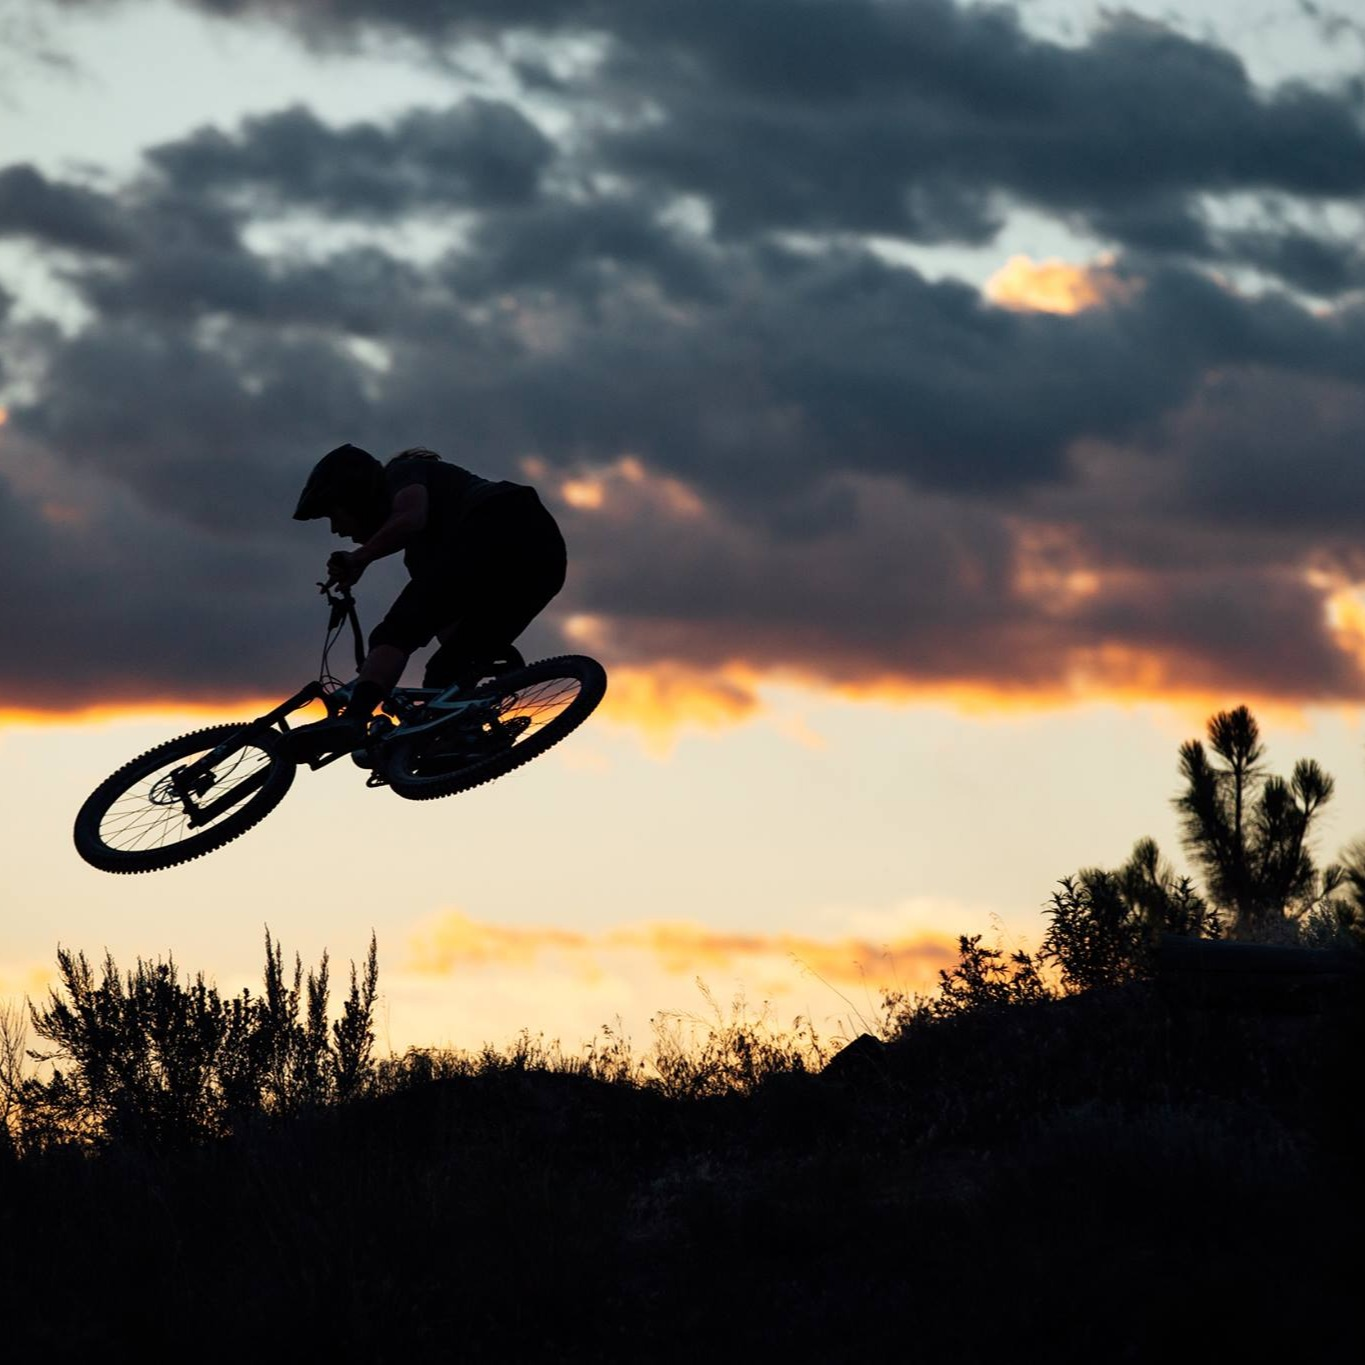 Mountain biker soars through a sunset sky